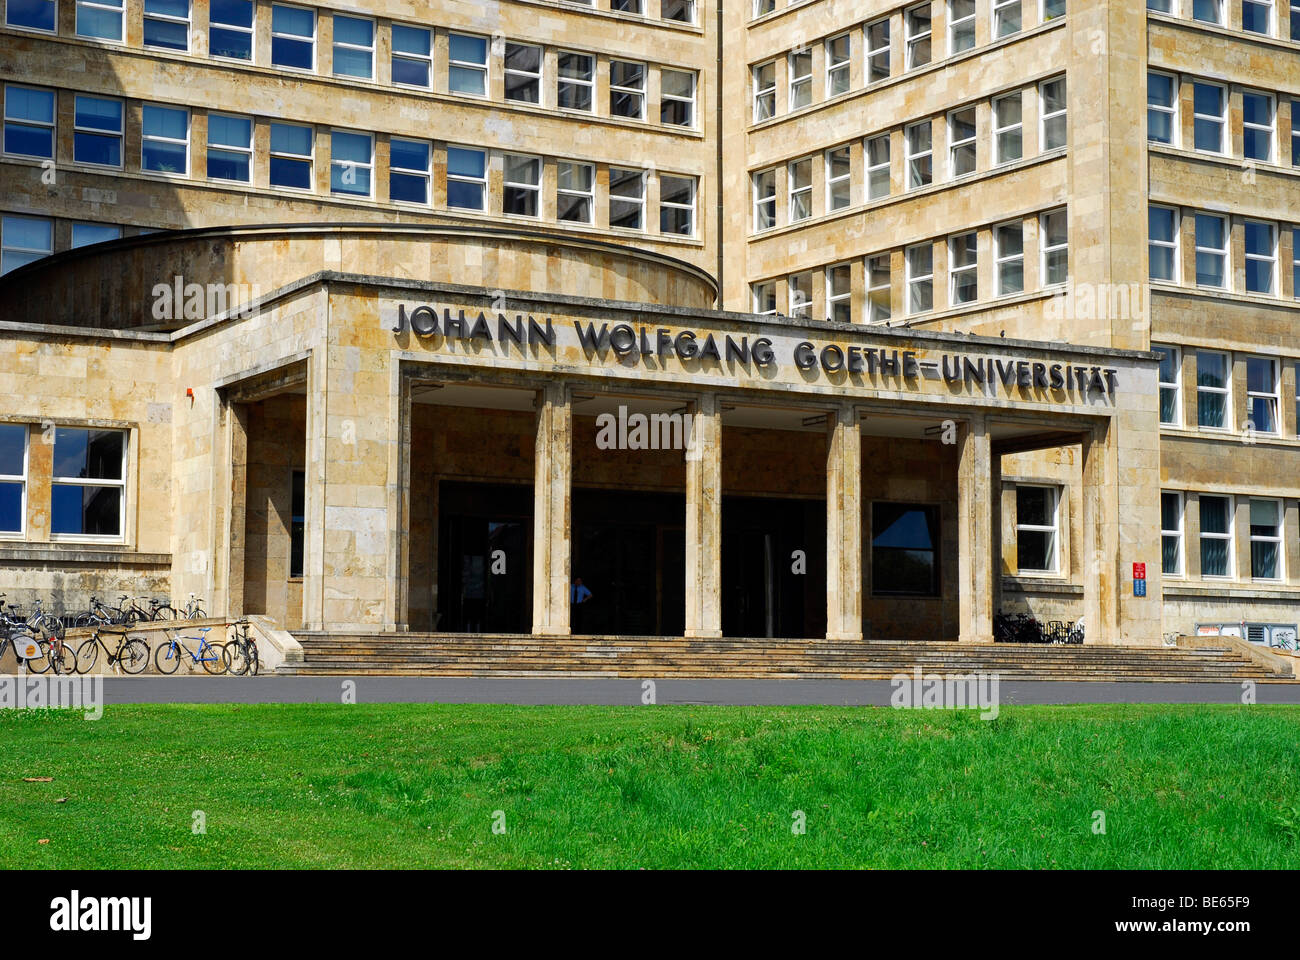 Main entrance in neo-classicistic style, Goethe-Universitaet, Campus Westend, a former IG Farben building by architect Stock Photo